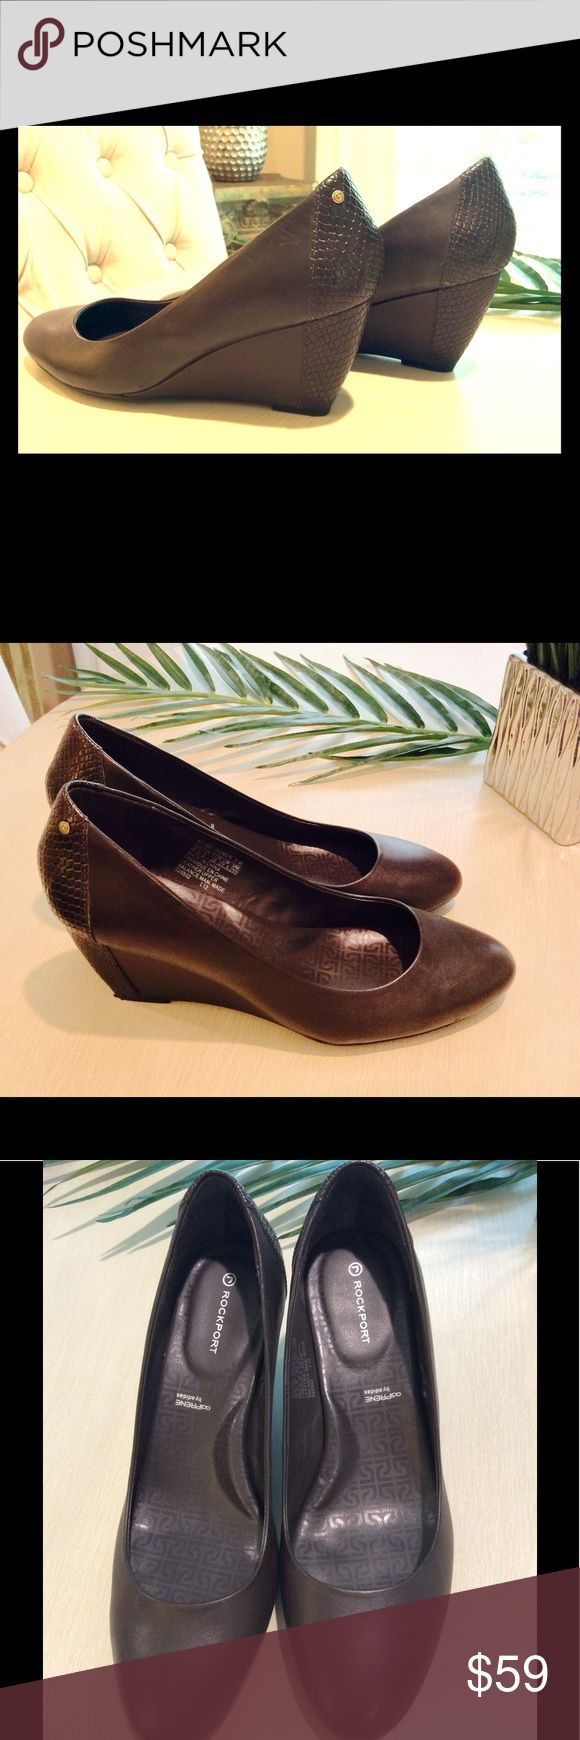 "Rockport ""AdiPrene"" by Adidas Brown Wedges Extremely comfortable wedges, size 8.5' all leather upper, Adidas technology , 3-inch wedge, worn once Rockport Shoes Wedges"